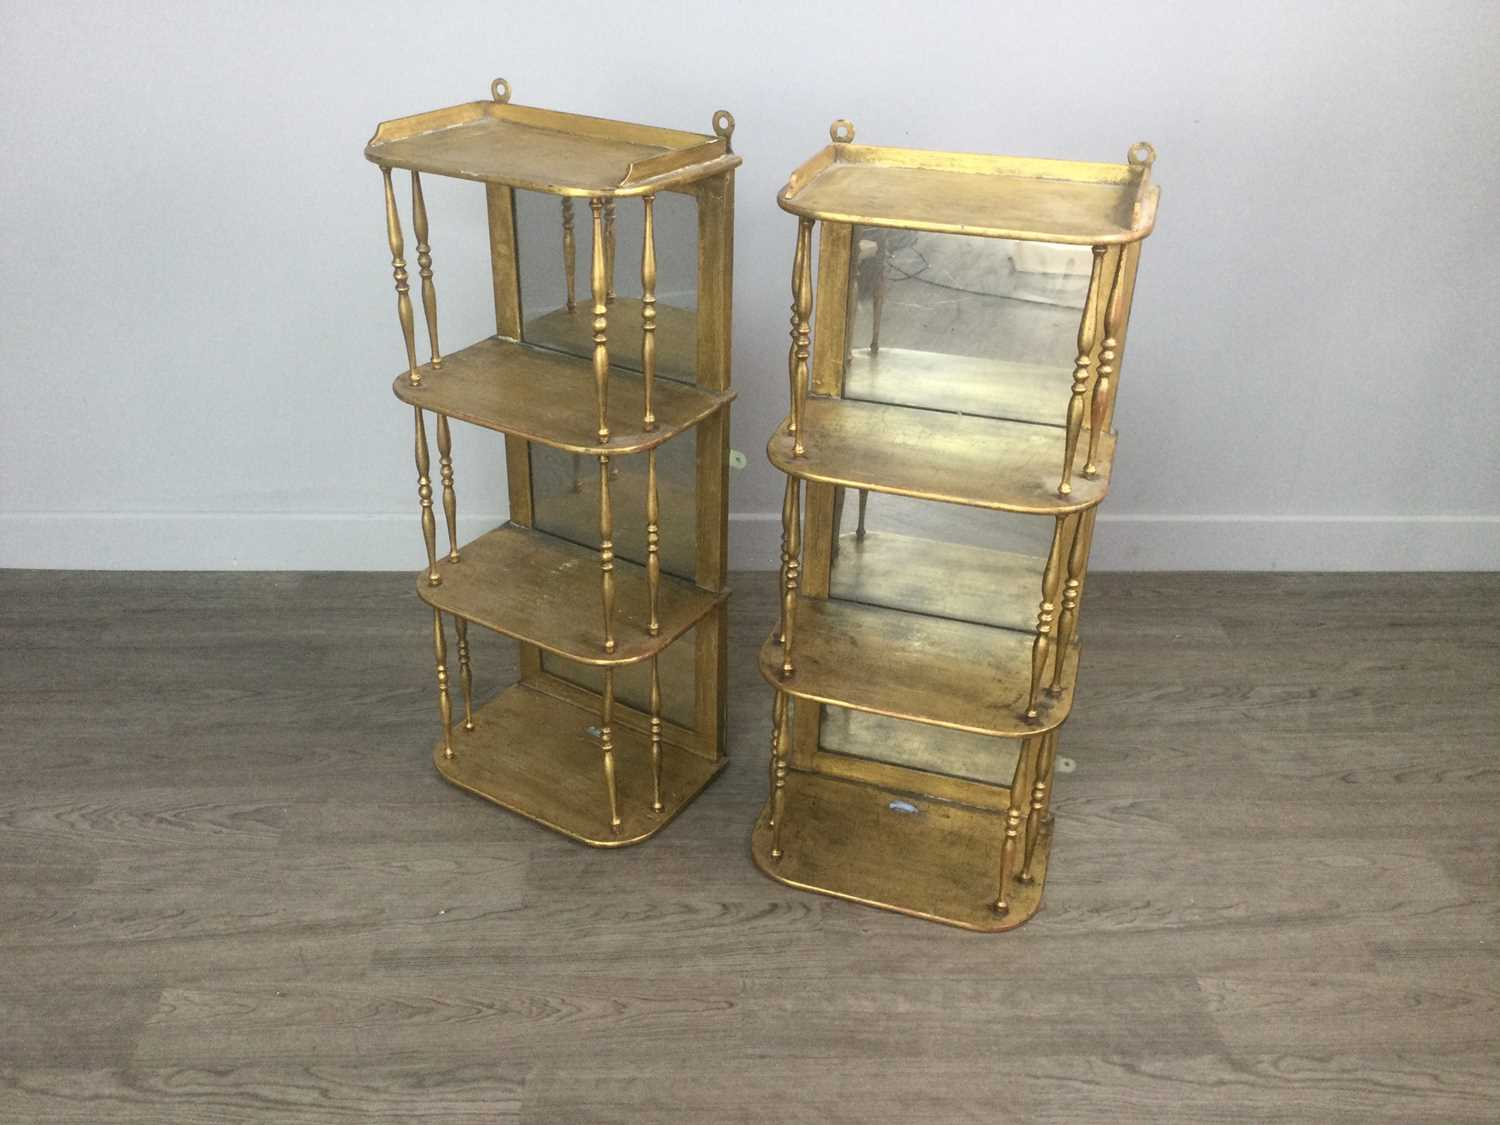 Lot 1269 - A PAIR OF VICTORIAN GILT PAINTED HANGING WALL SHELVES